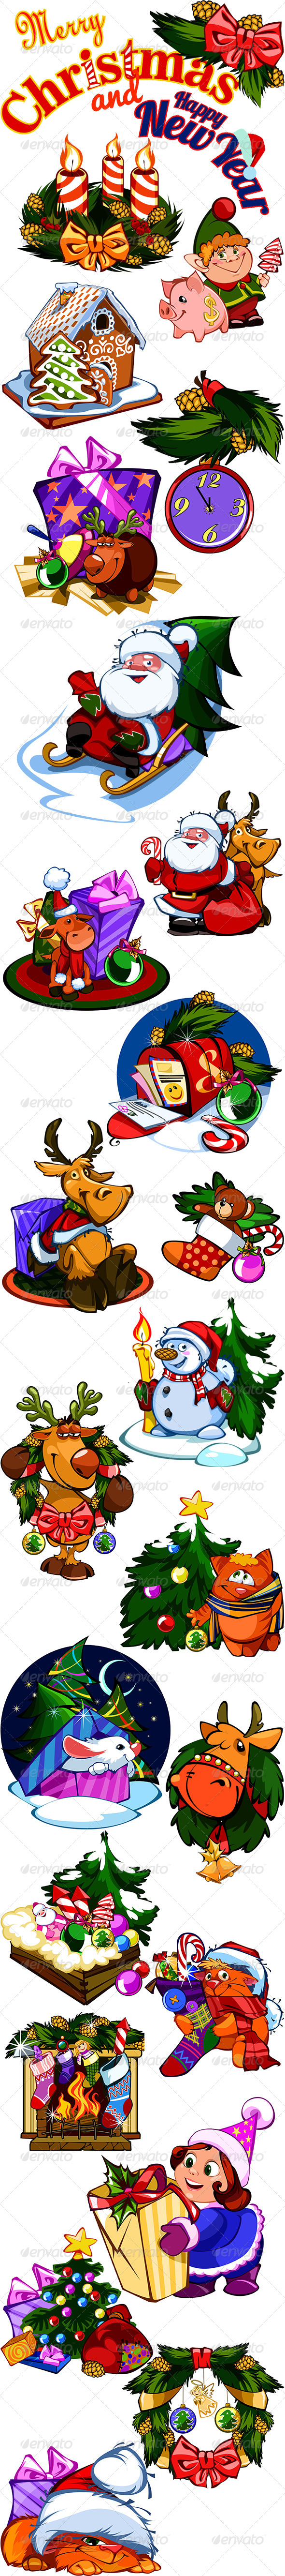 GraphicRiver Christmas Illustrations 6073150